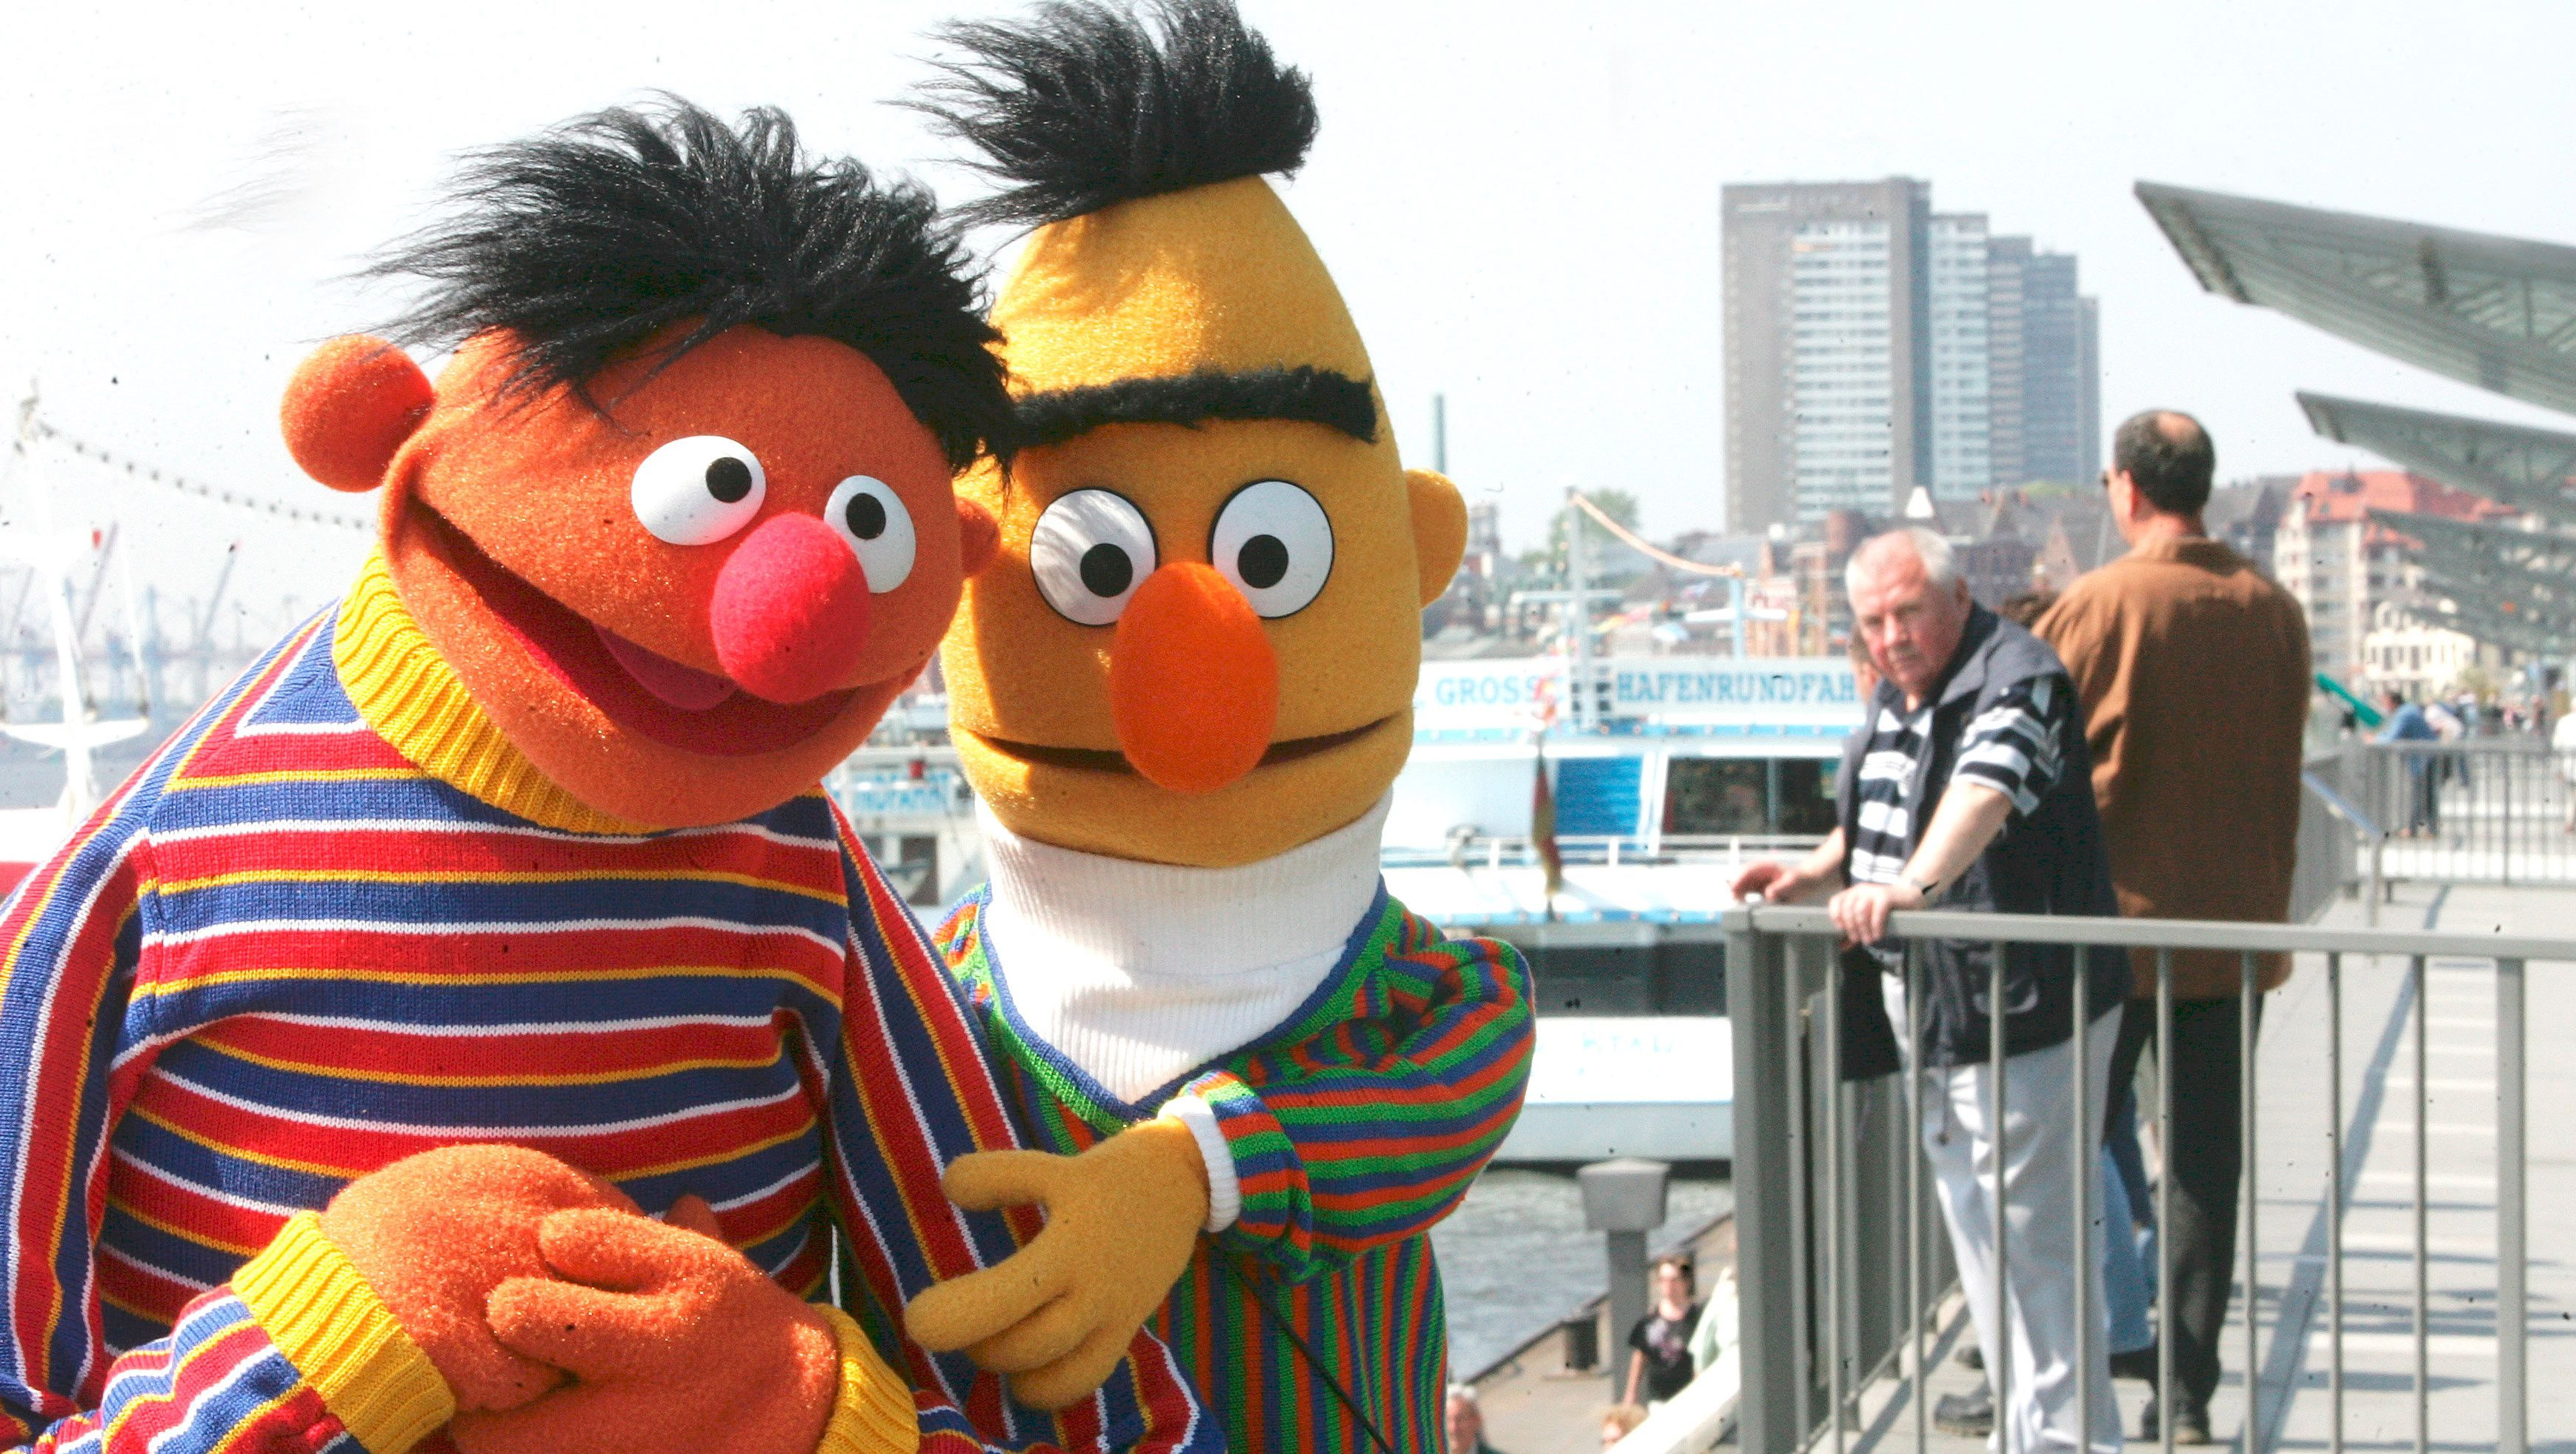 Burt and ernie are gay